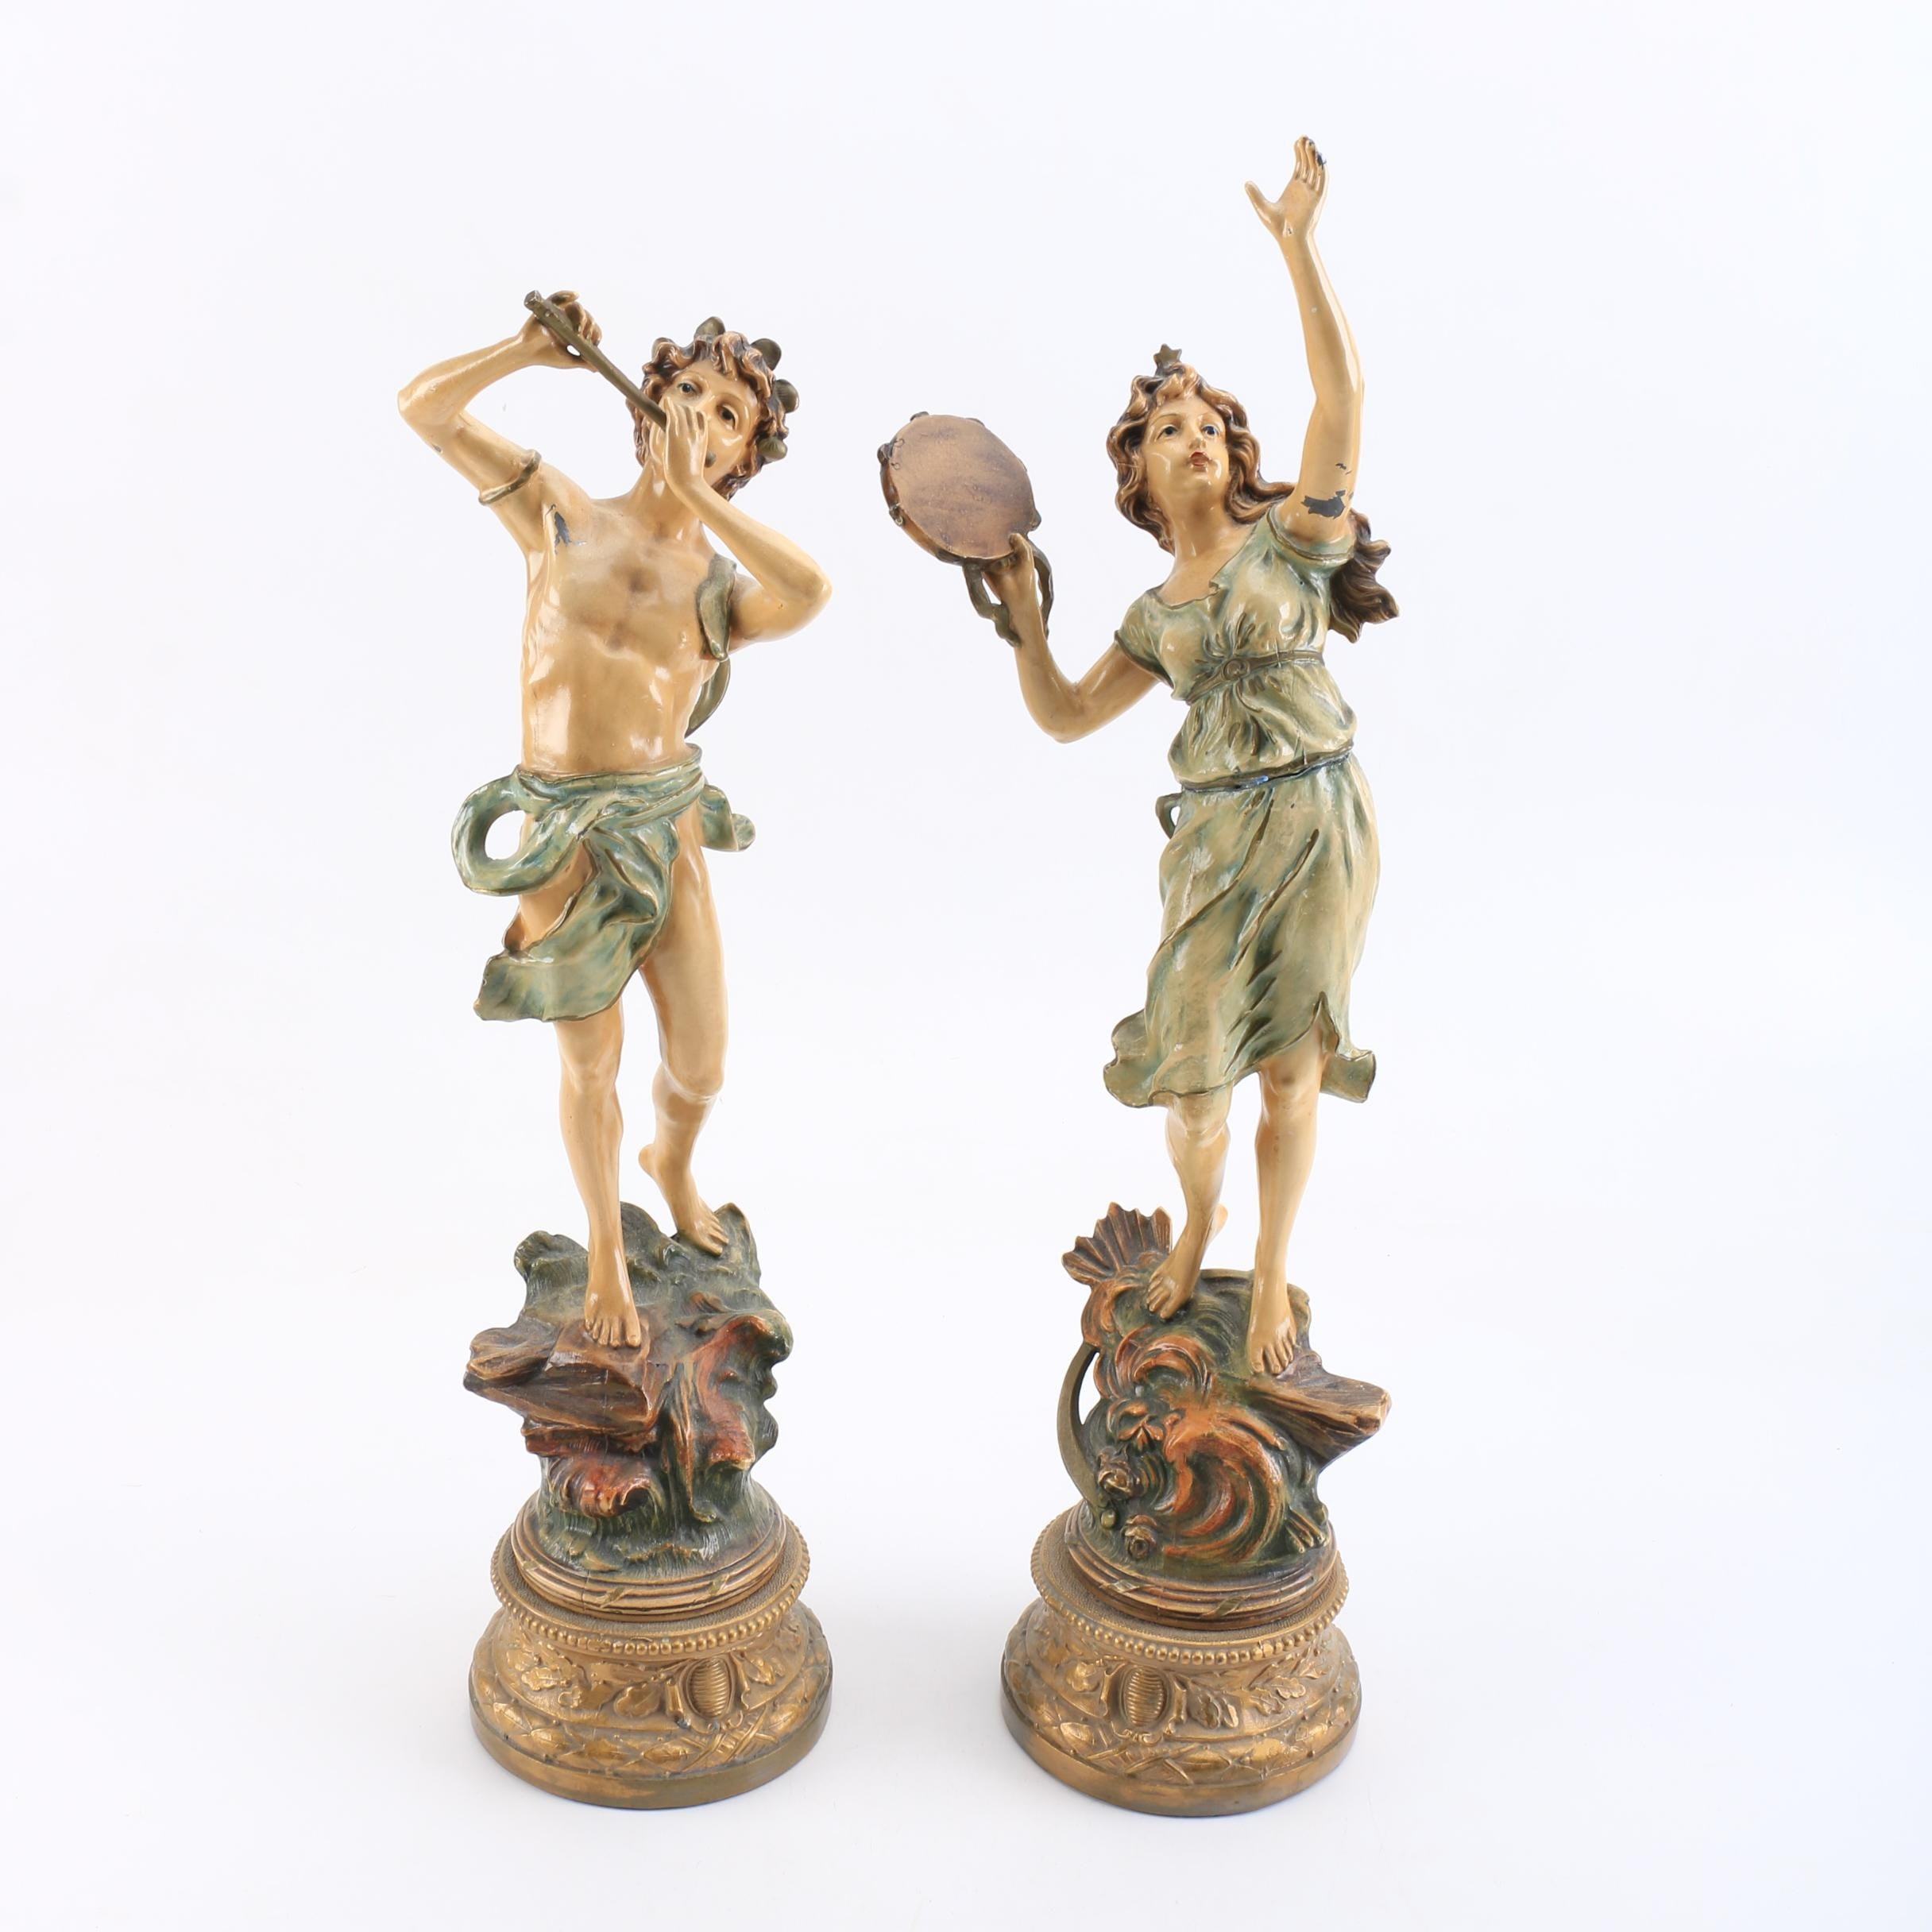 Polychrome Painted Metal Figurines of Musicians